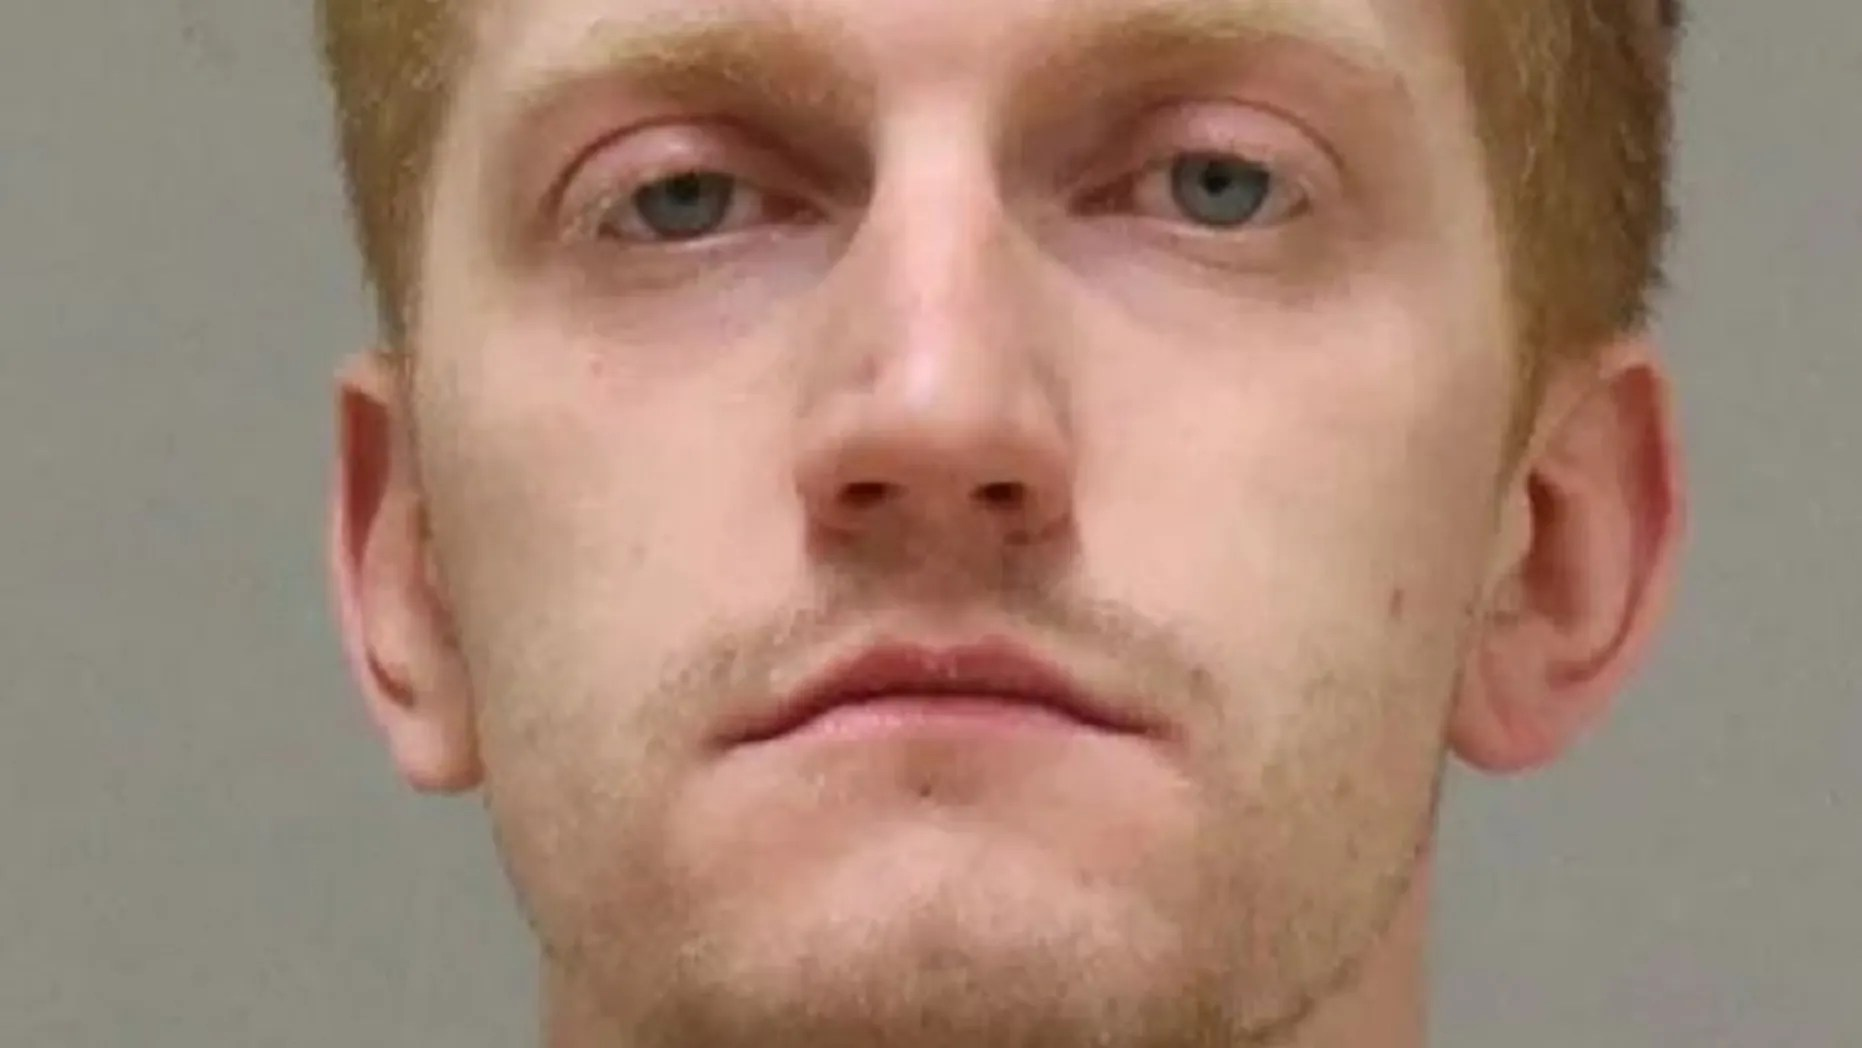 A man has been charged in the dismemberment of a woman in his apartment in western Michigan.